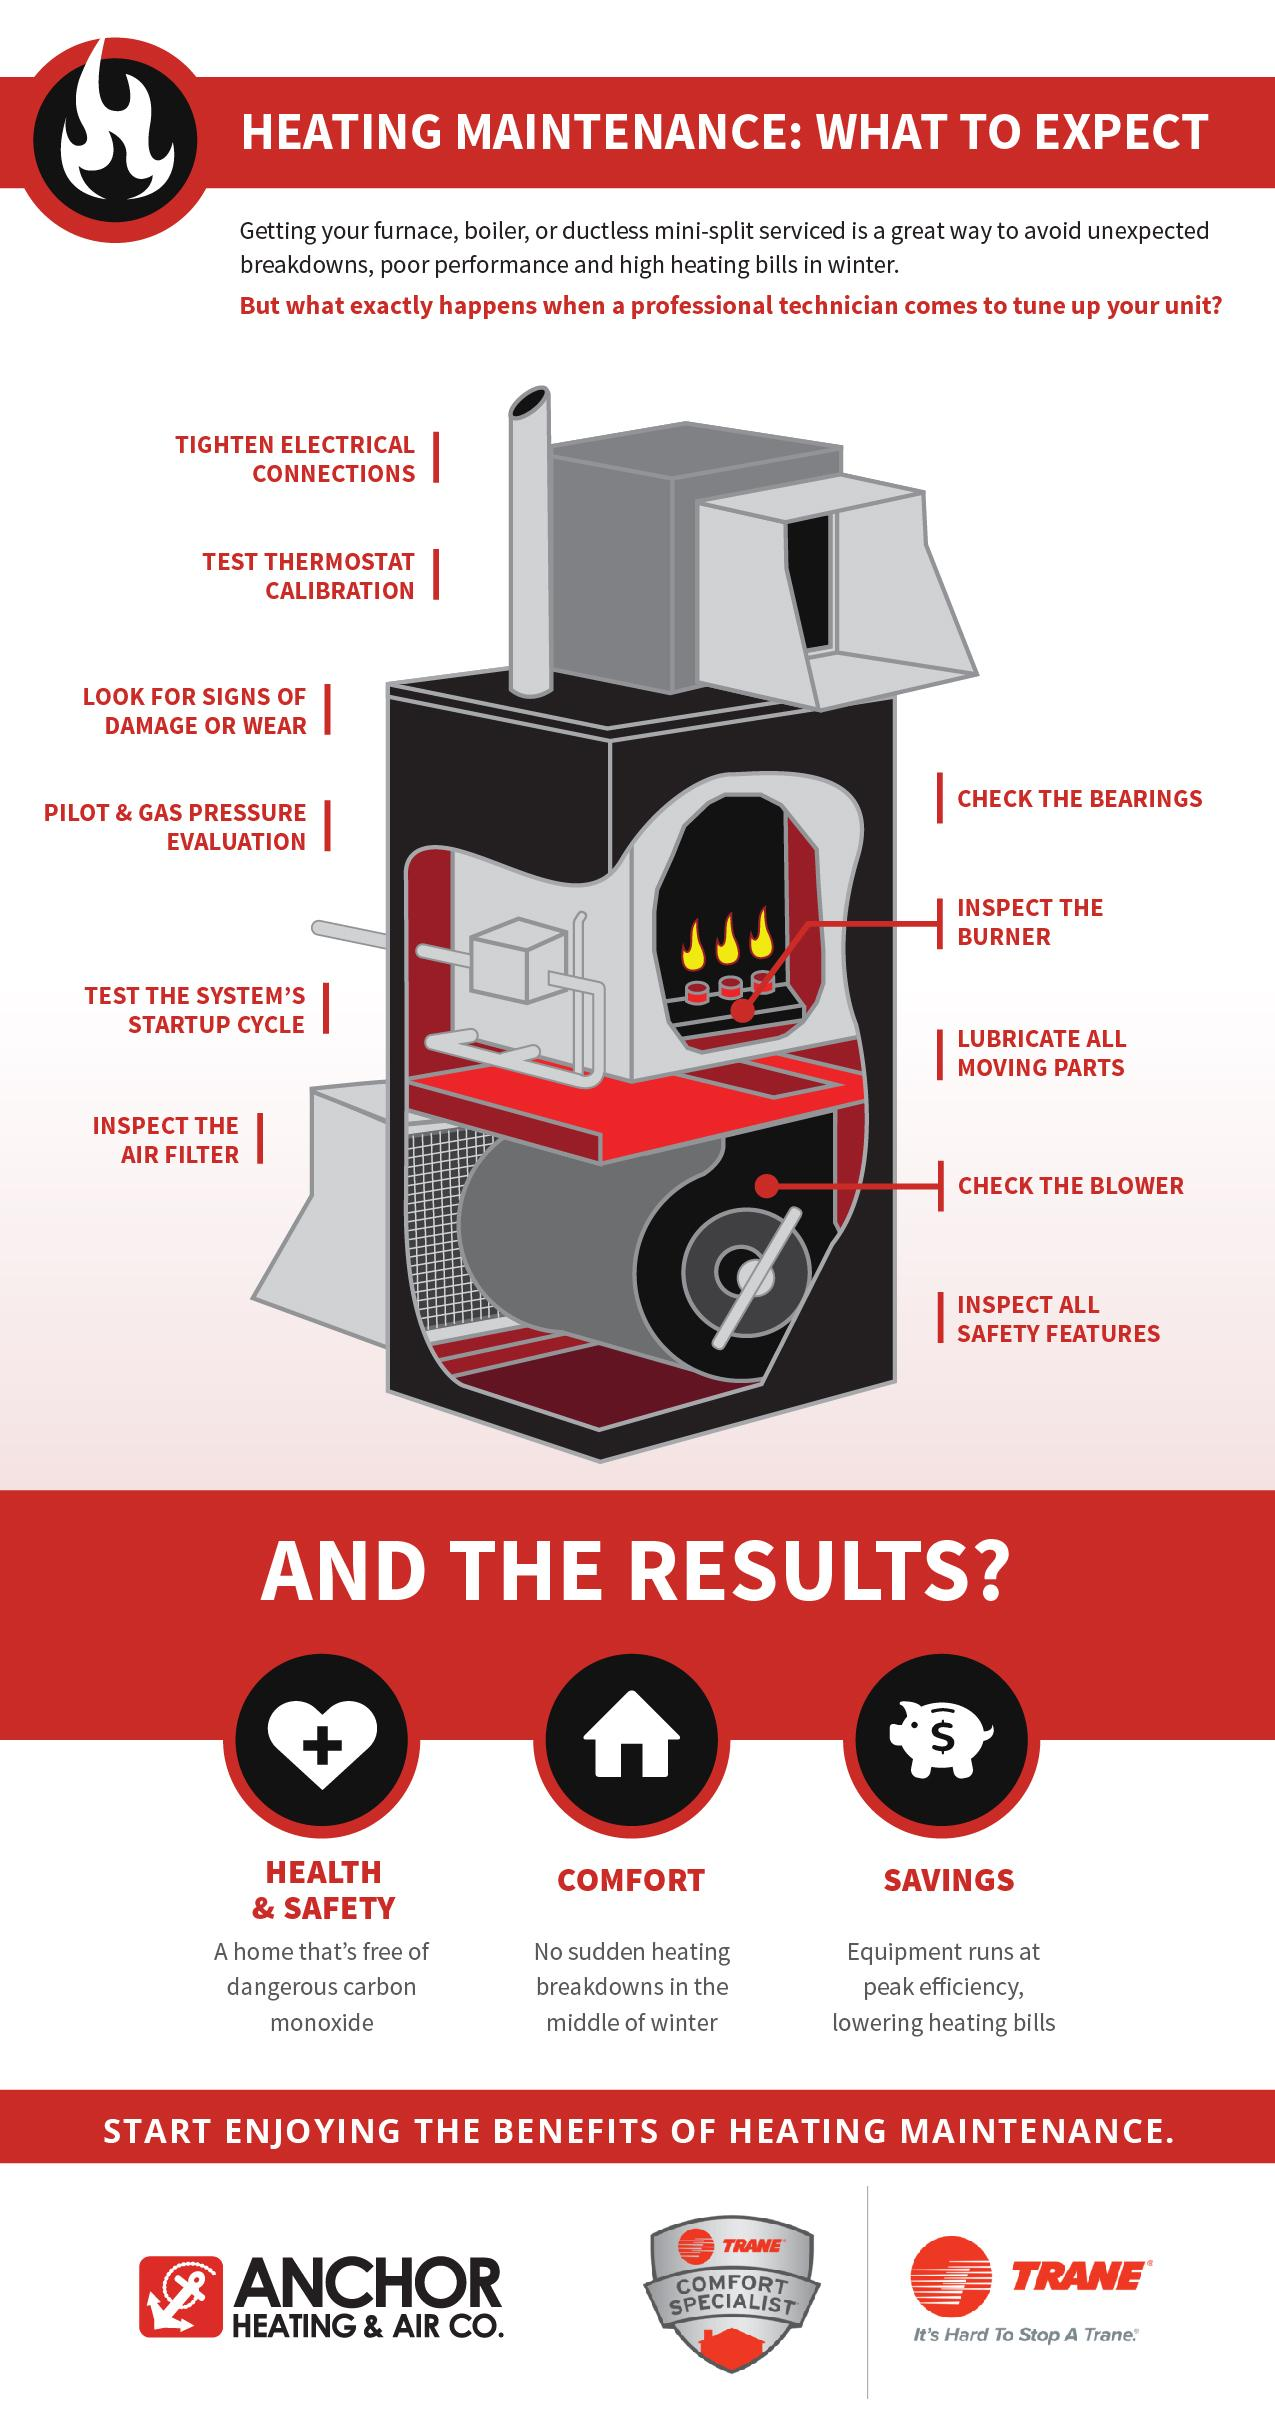 heating maintenance: what to expect infographic anchor